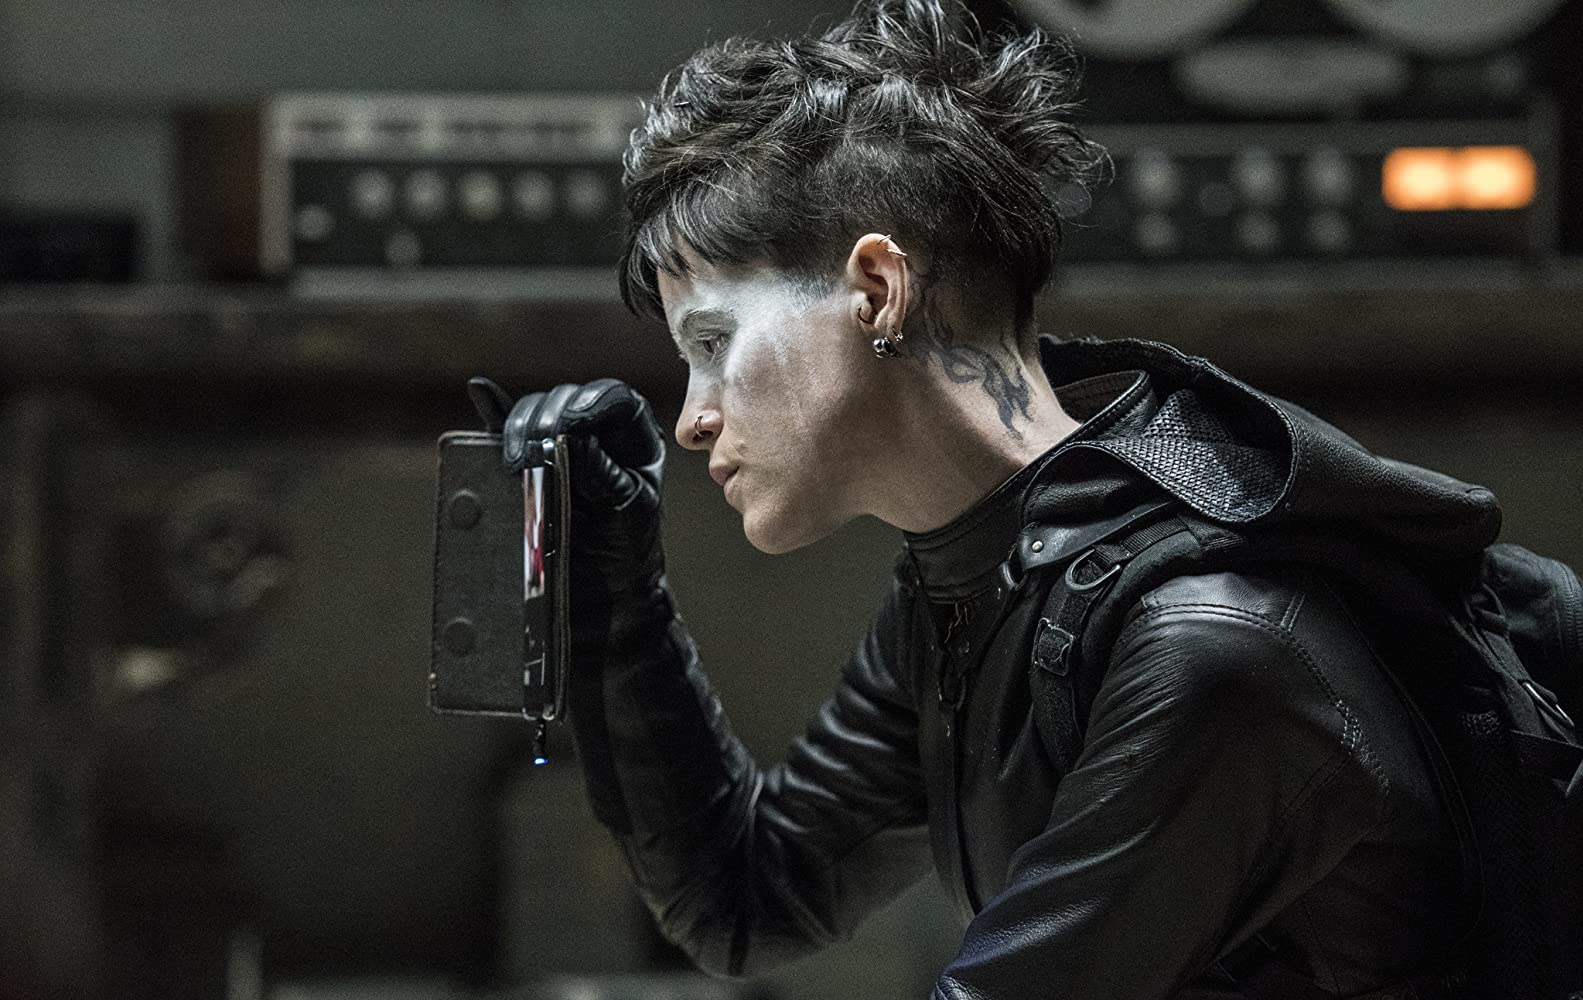 Claire Foy in The Girl in the Spider's Web (2018)